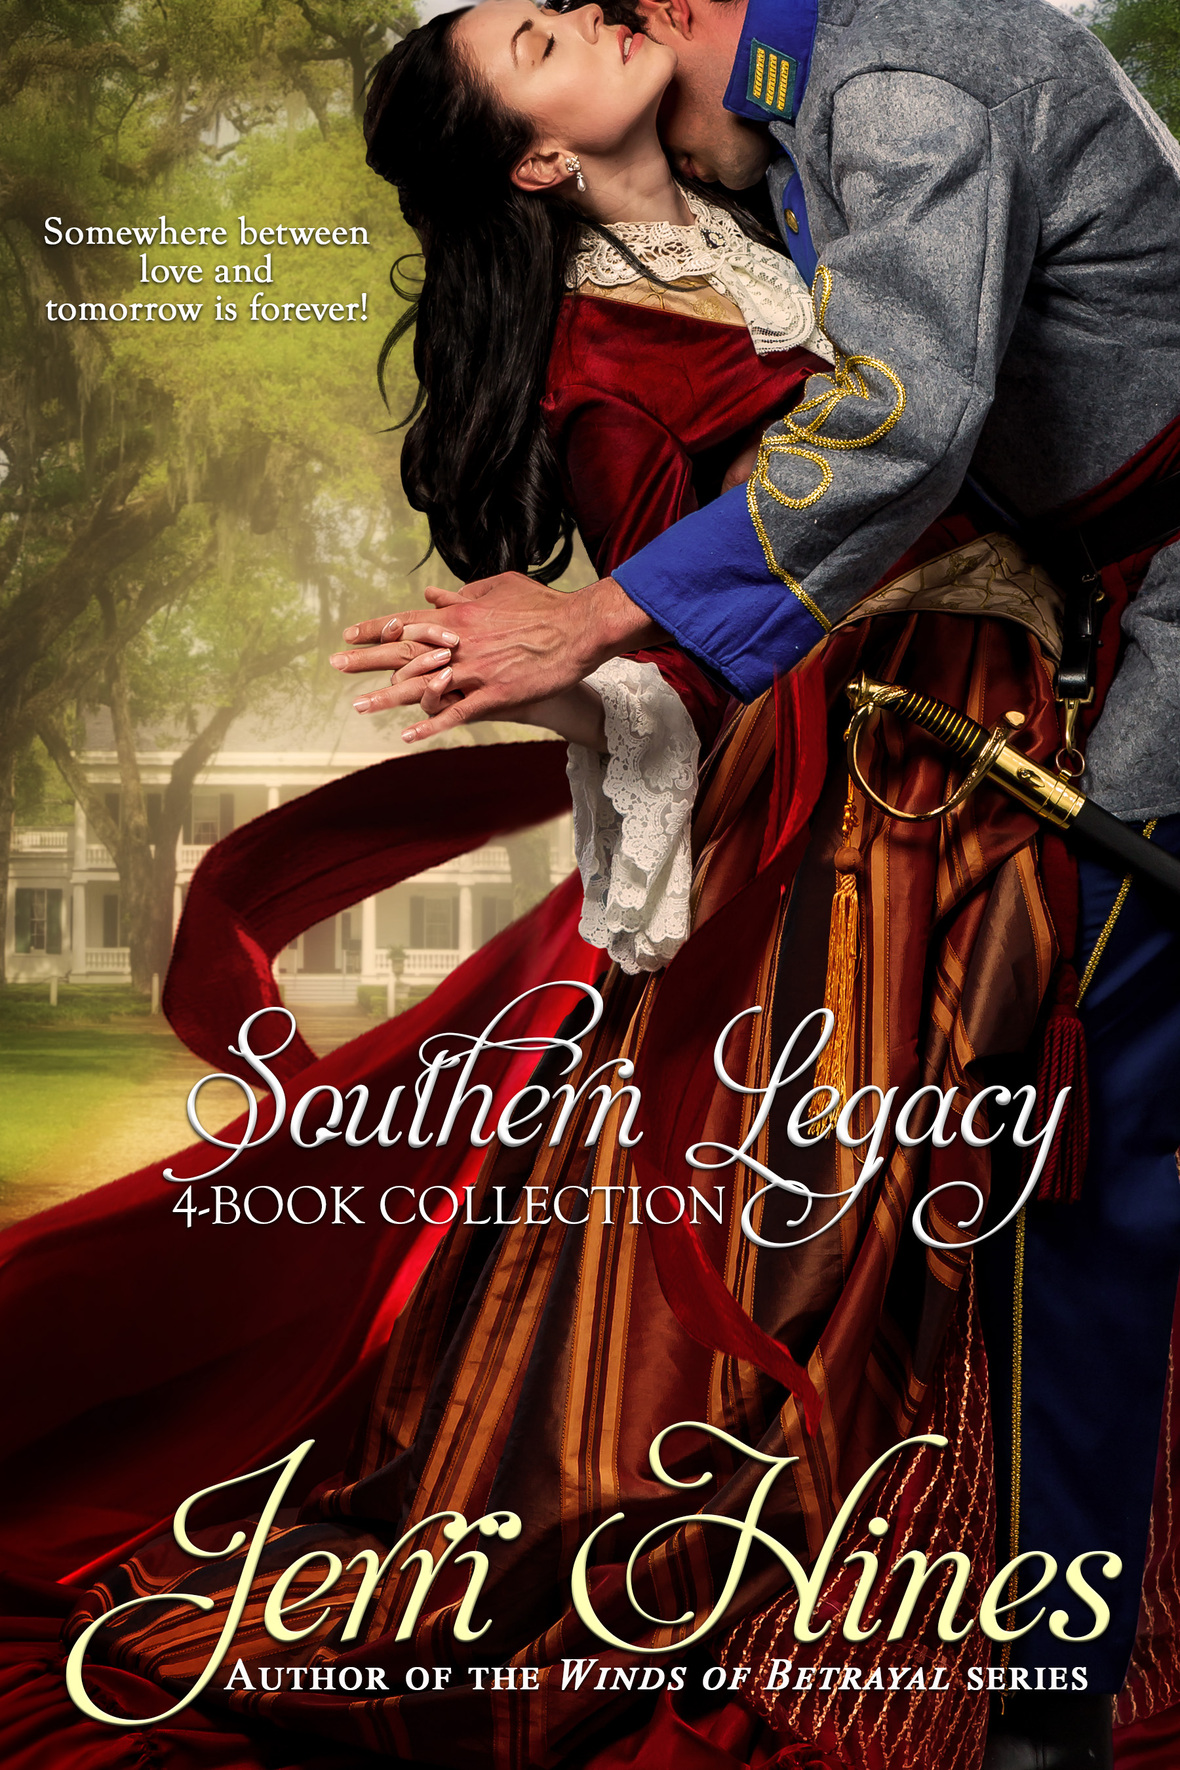 SouthernLegacy CollectionFlat